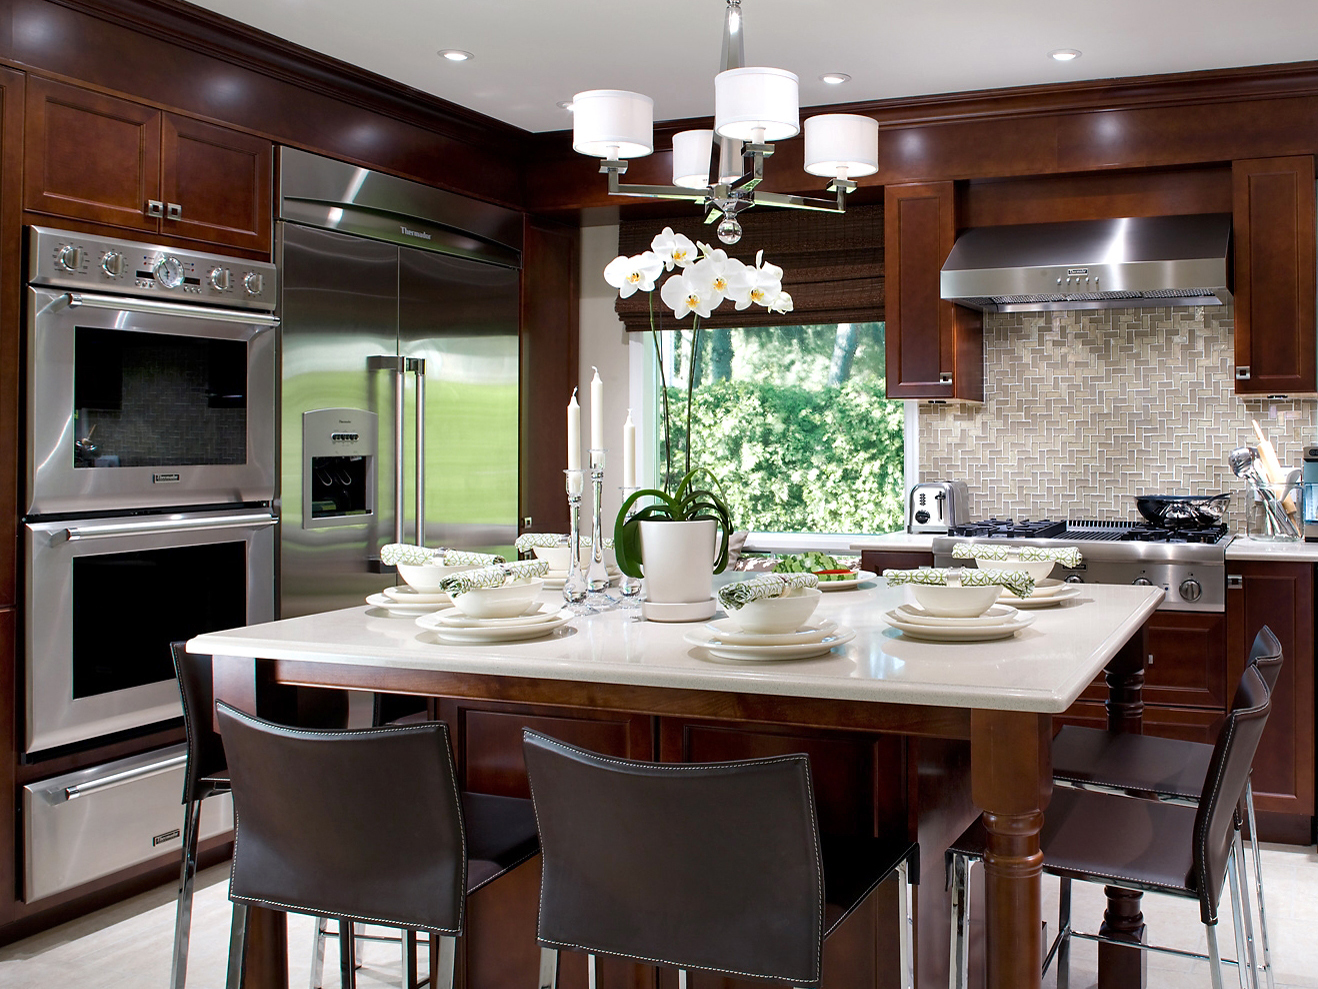 House Kitchen Interior Design Pictures Is The Kitchen The Most Important Room Of The Home Freshome